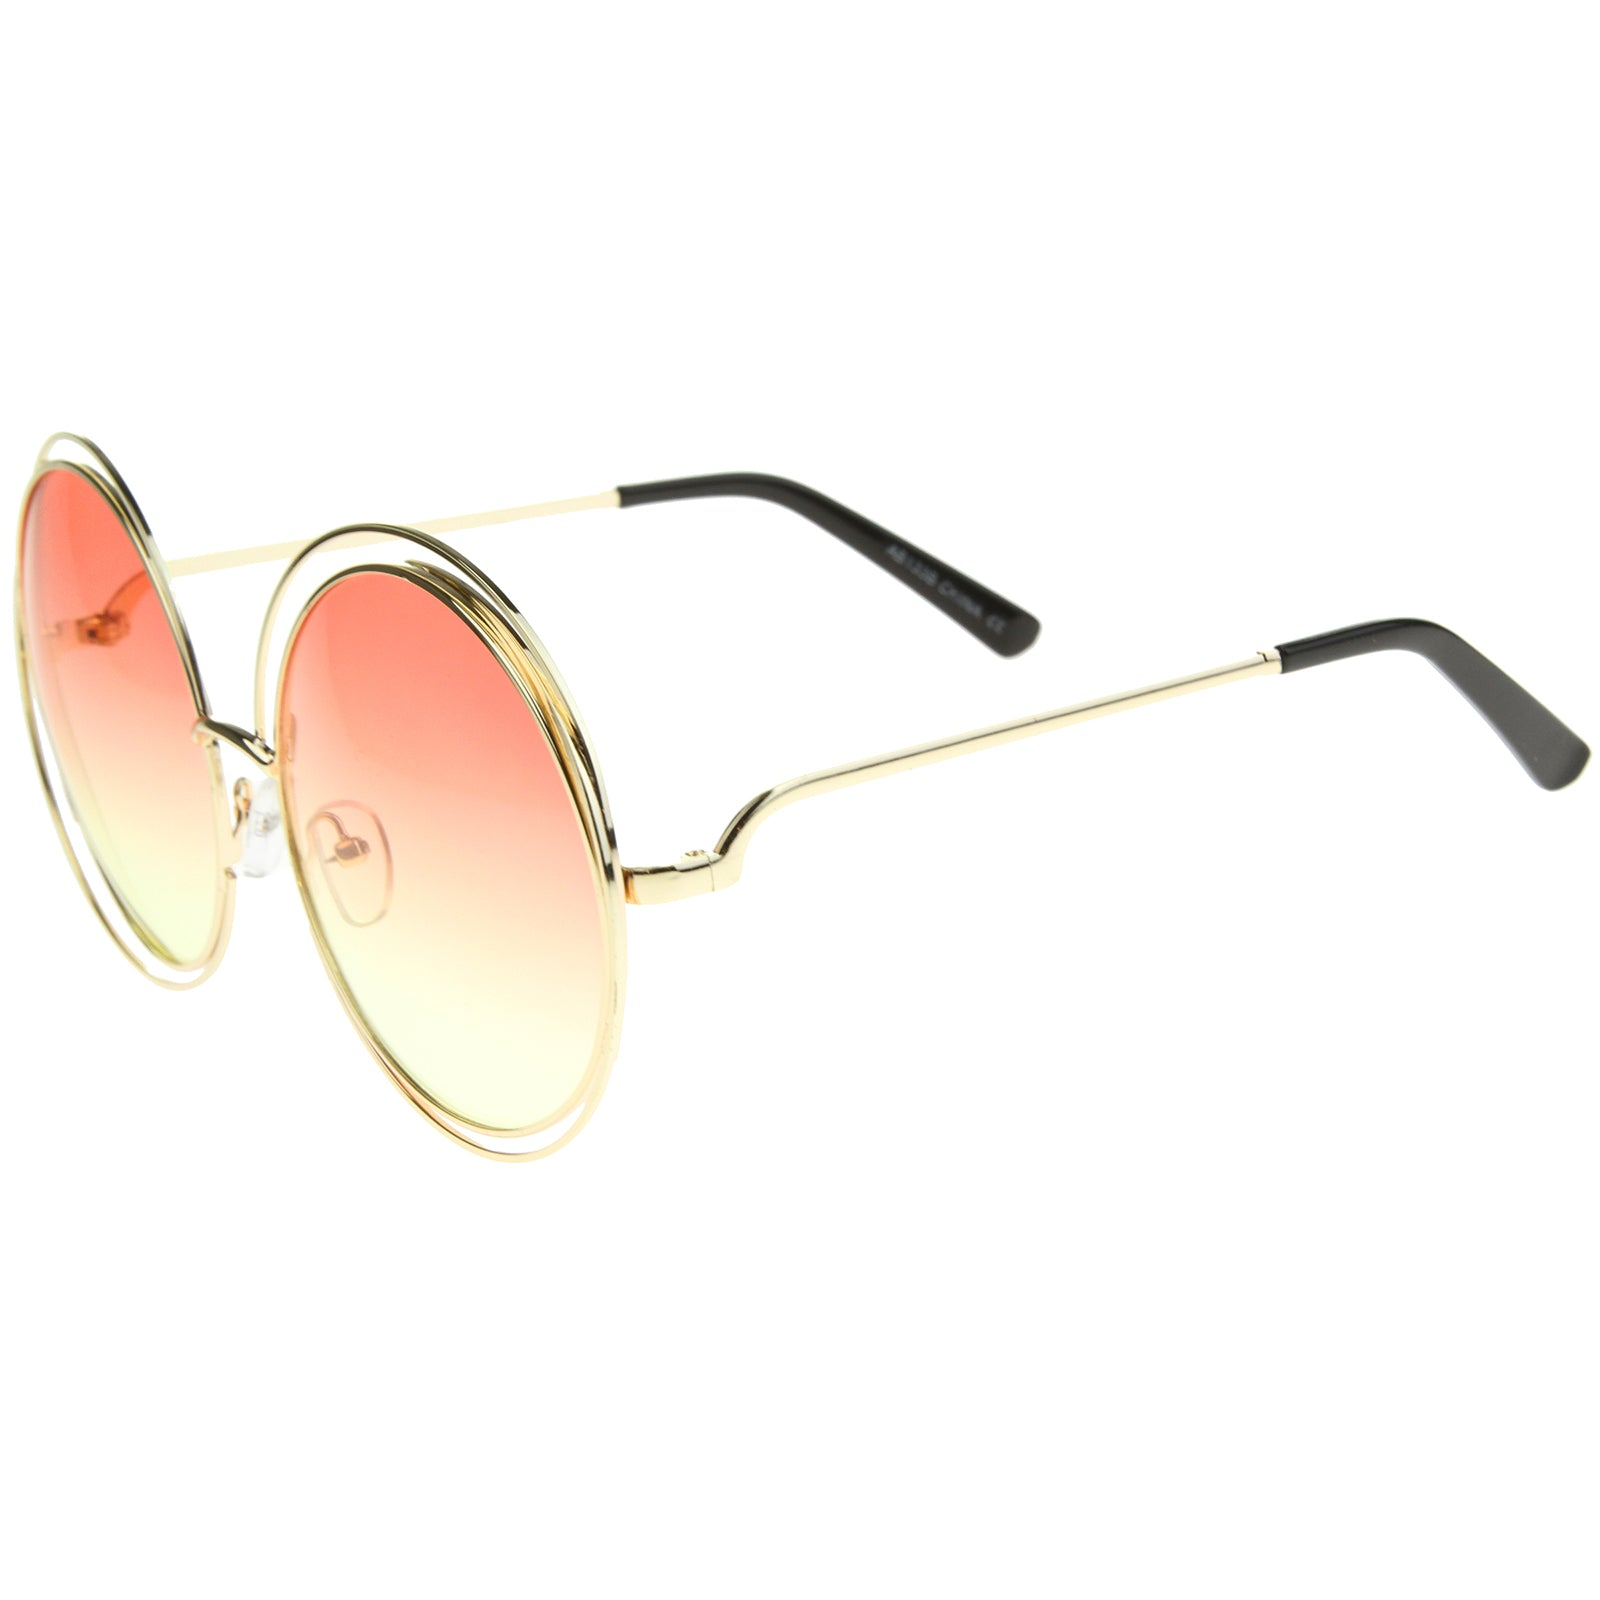 Oversize Wire Frame Gradient Two-Tone Color Lens Round Sunglasses 61mm - sunglass.la - 3